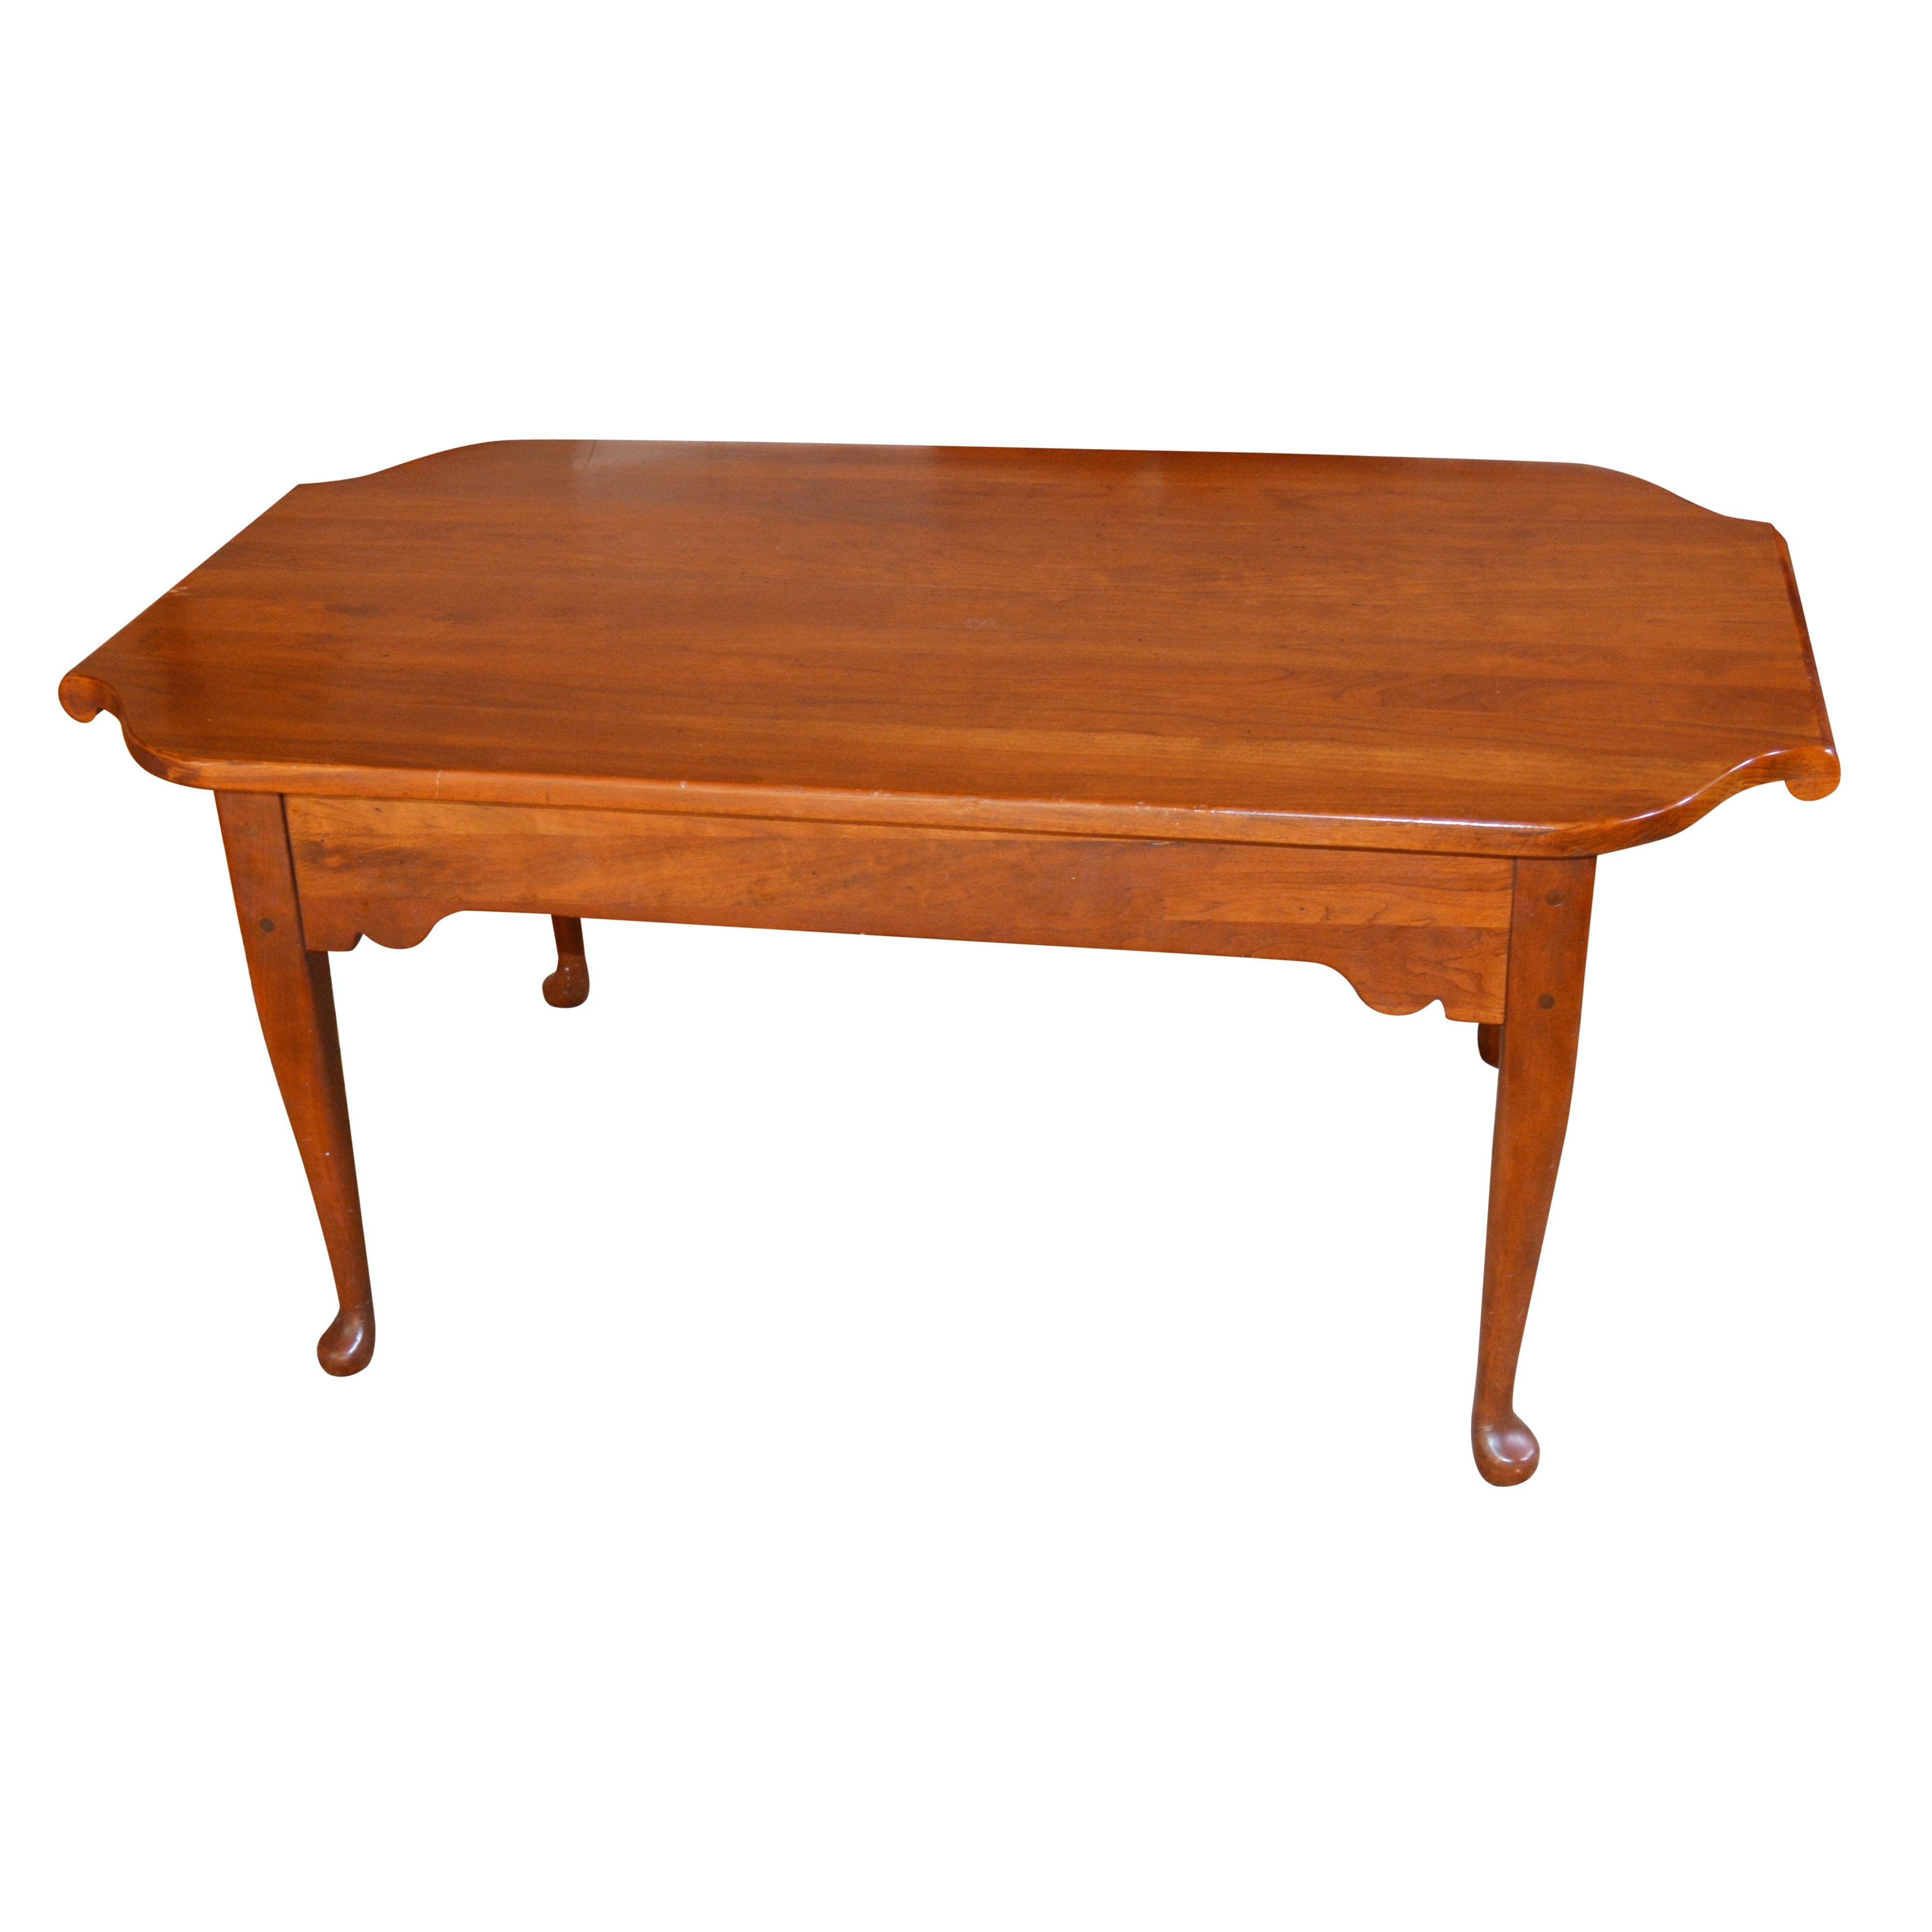 Colonial Revival Style Cherrywood Coffee Table by Bob Timberlake, 20th Century